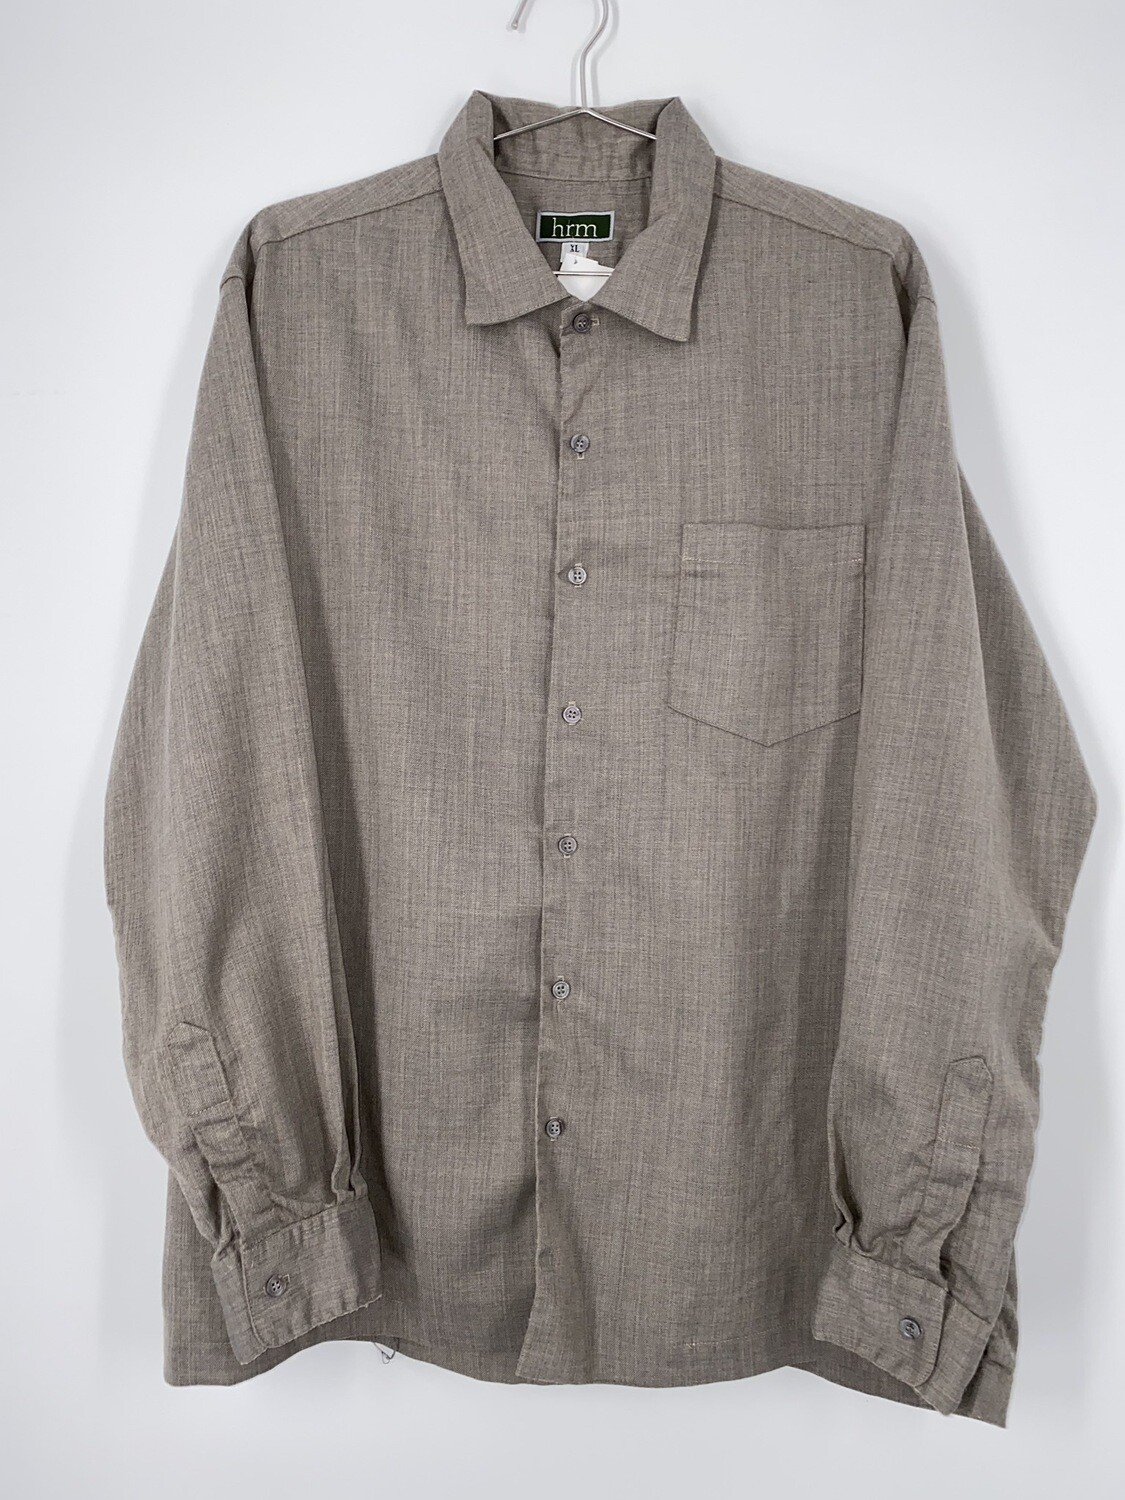 Hrm Grey Button Up Size L